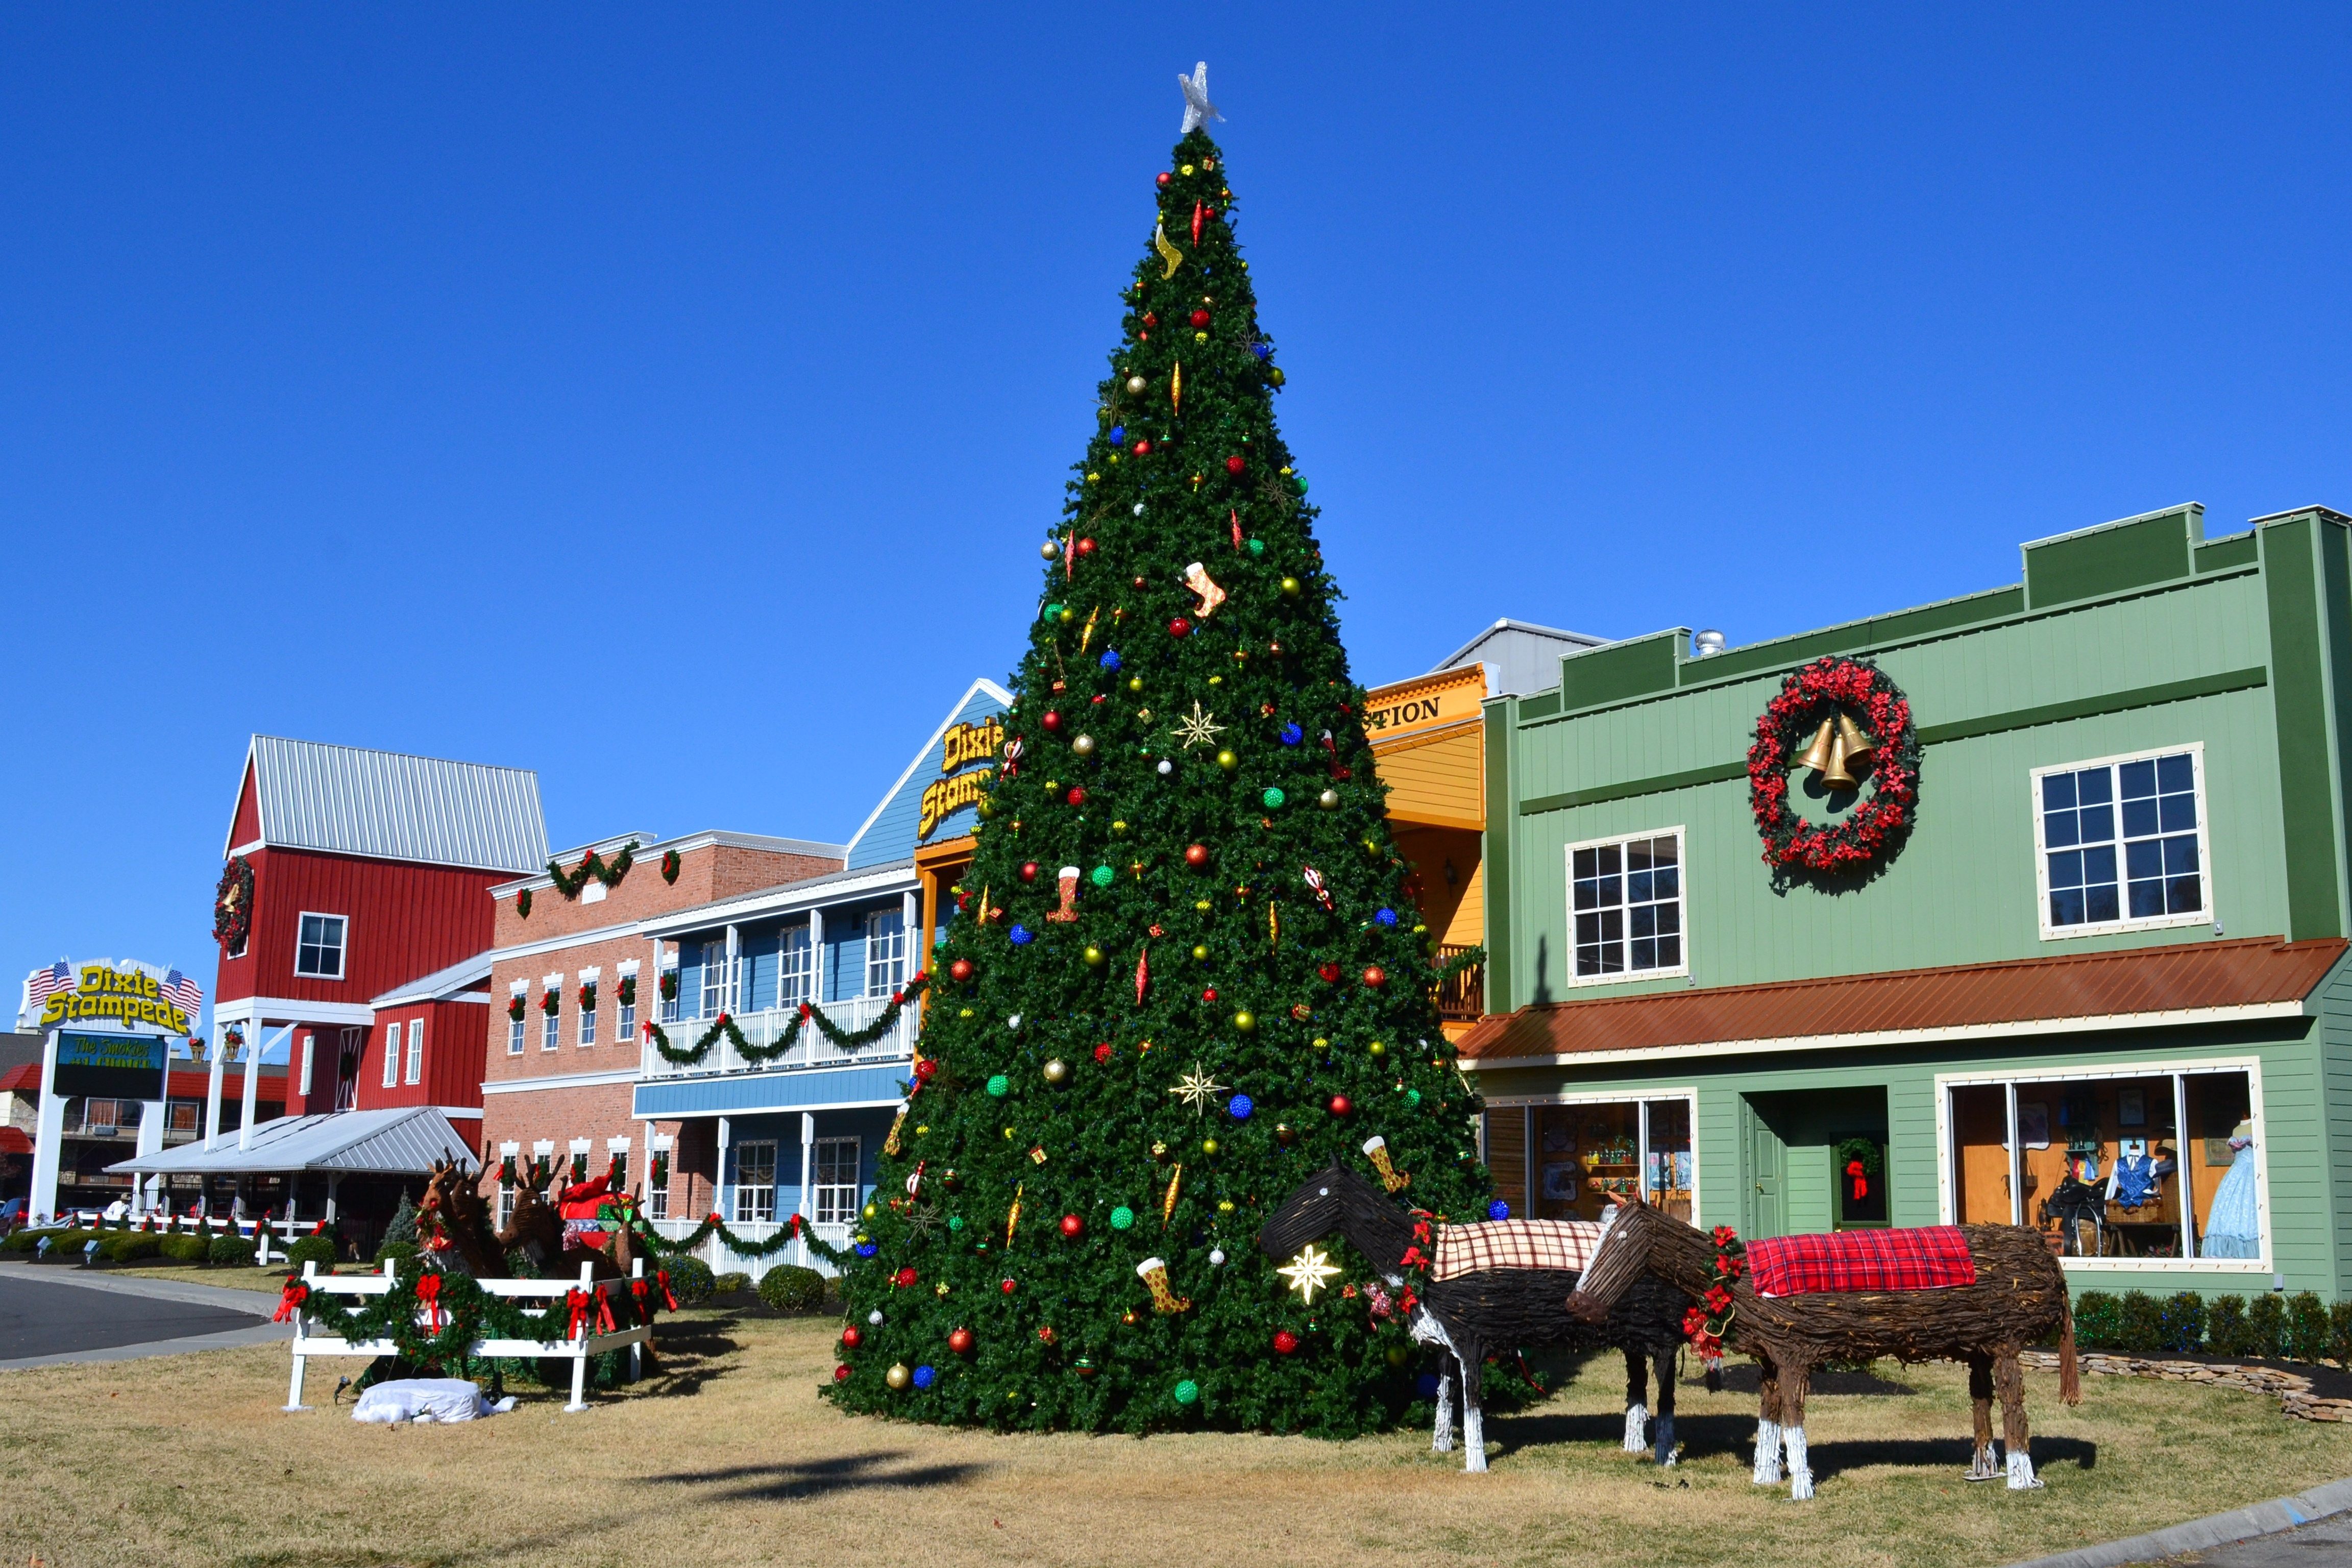 dixie stampede has beautiful christmas decorations during winterfest